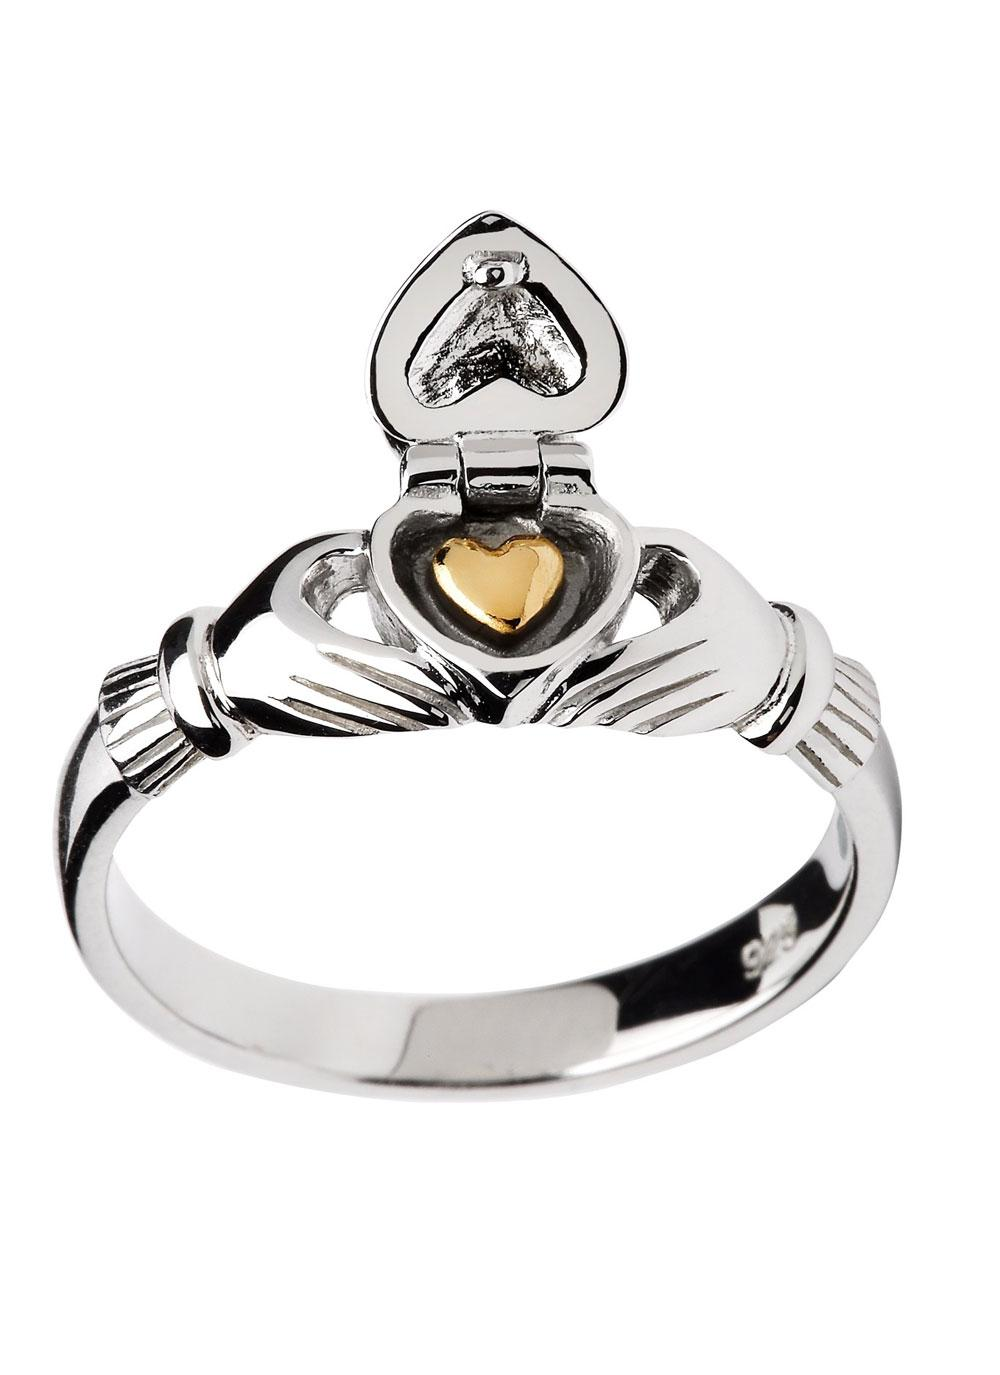 sterling silver sweetheart claddagh ring heart ring blarney. Black Bedroom Furniture Sets. Home Design Ideas